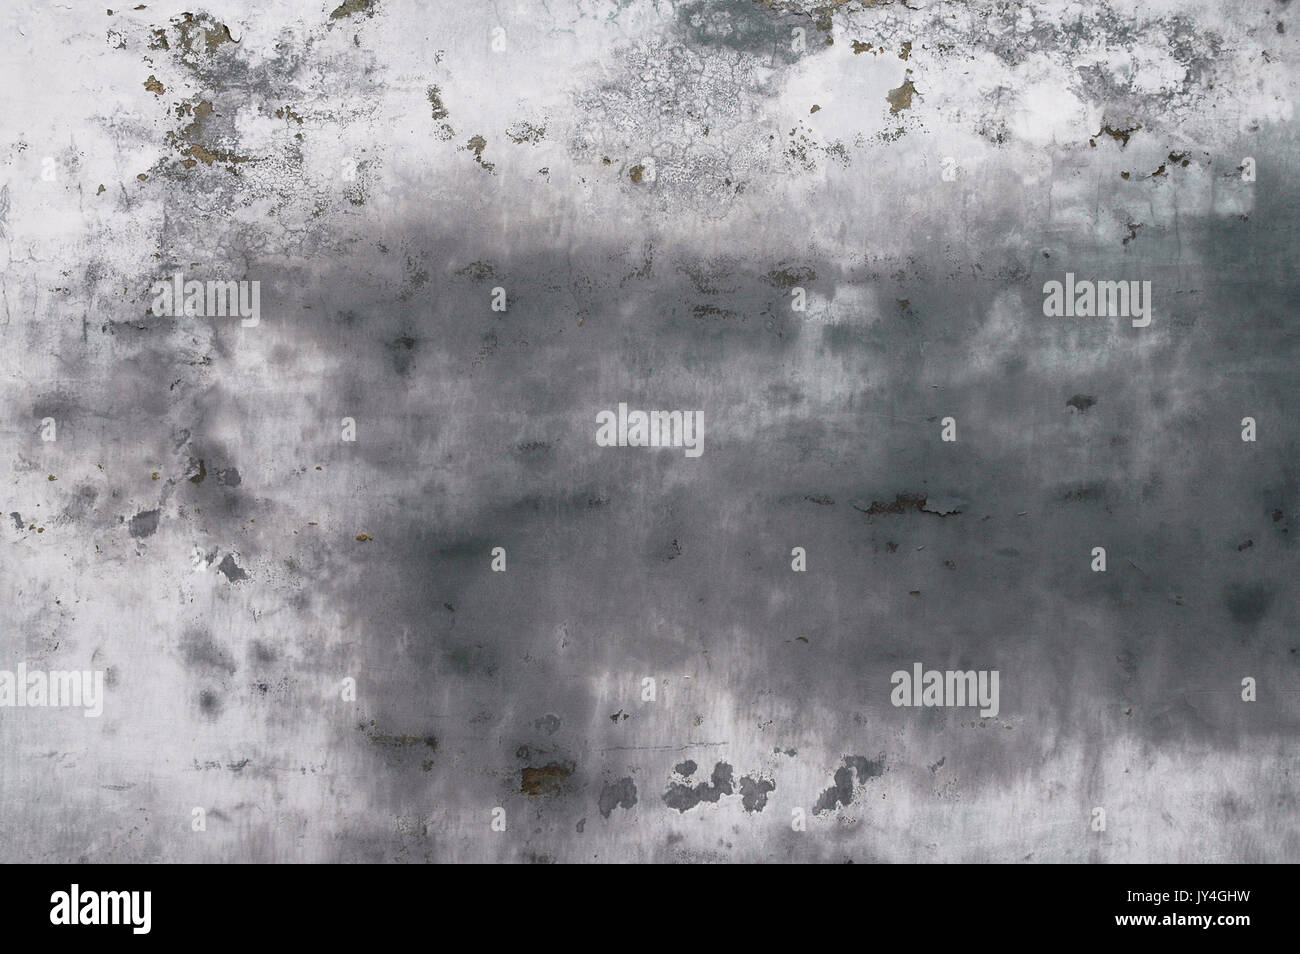 Texture of an old smudged grey wall in a hutong in Beijing, China. - Stock Image